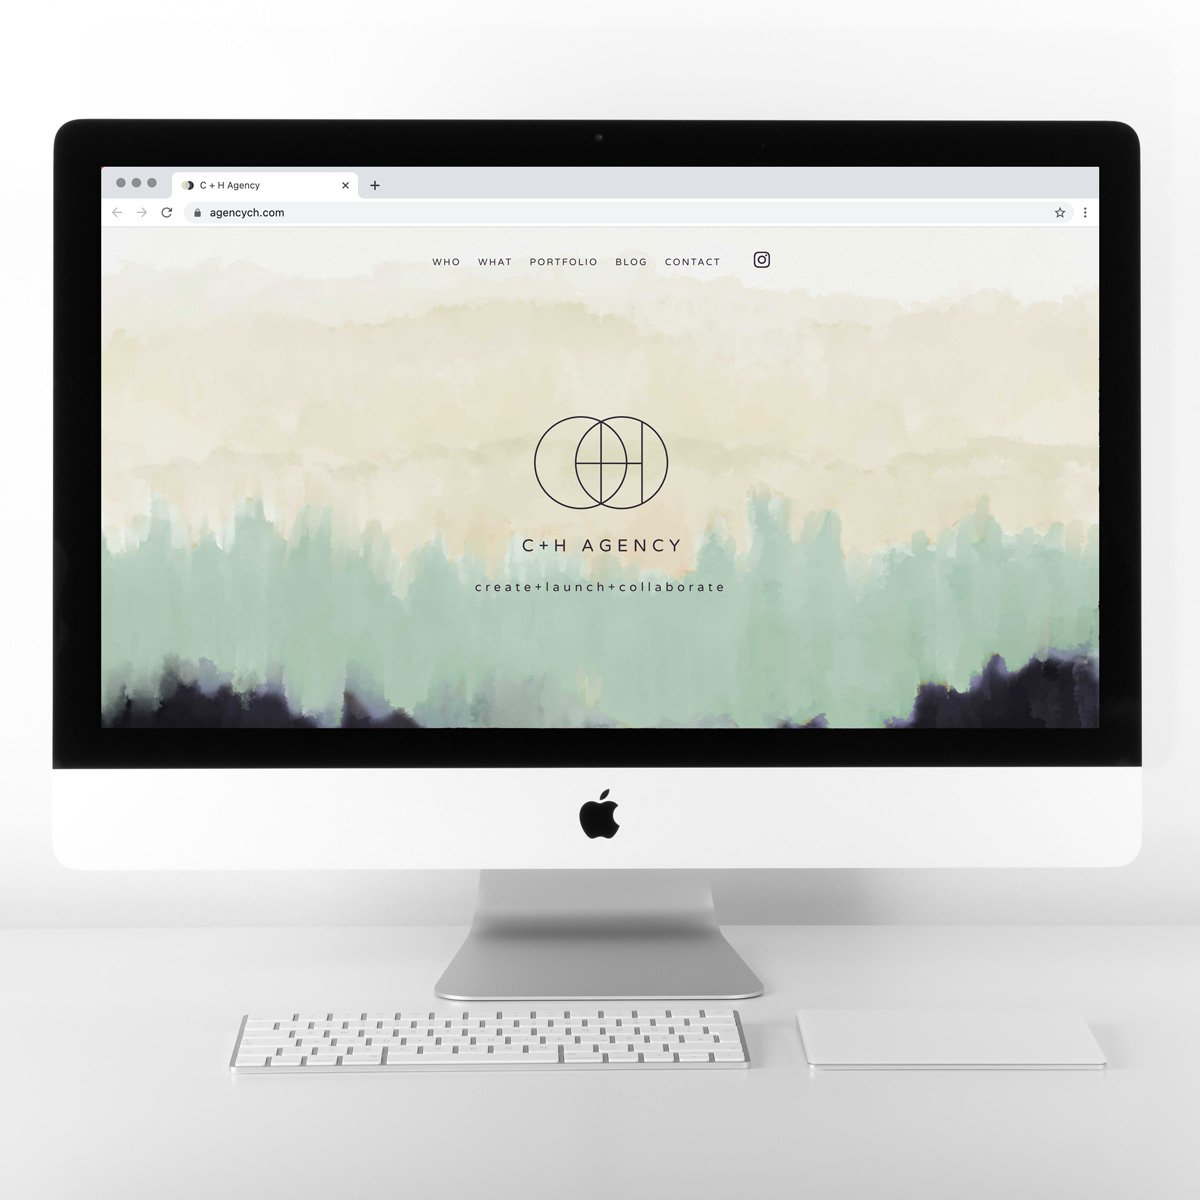 C + H Agency Web Site Design - Desktop